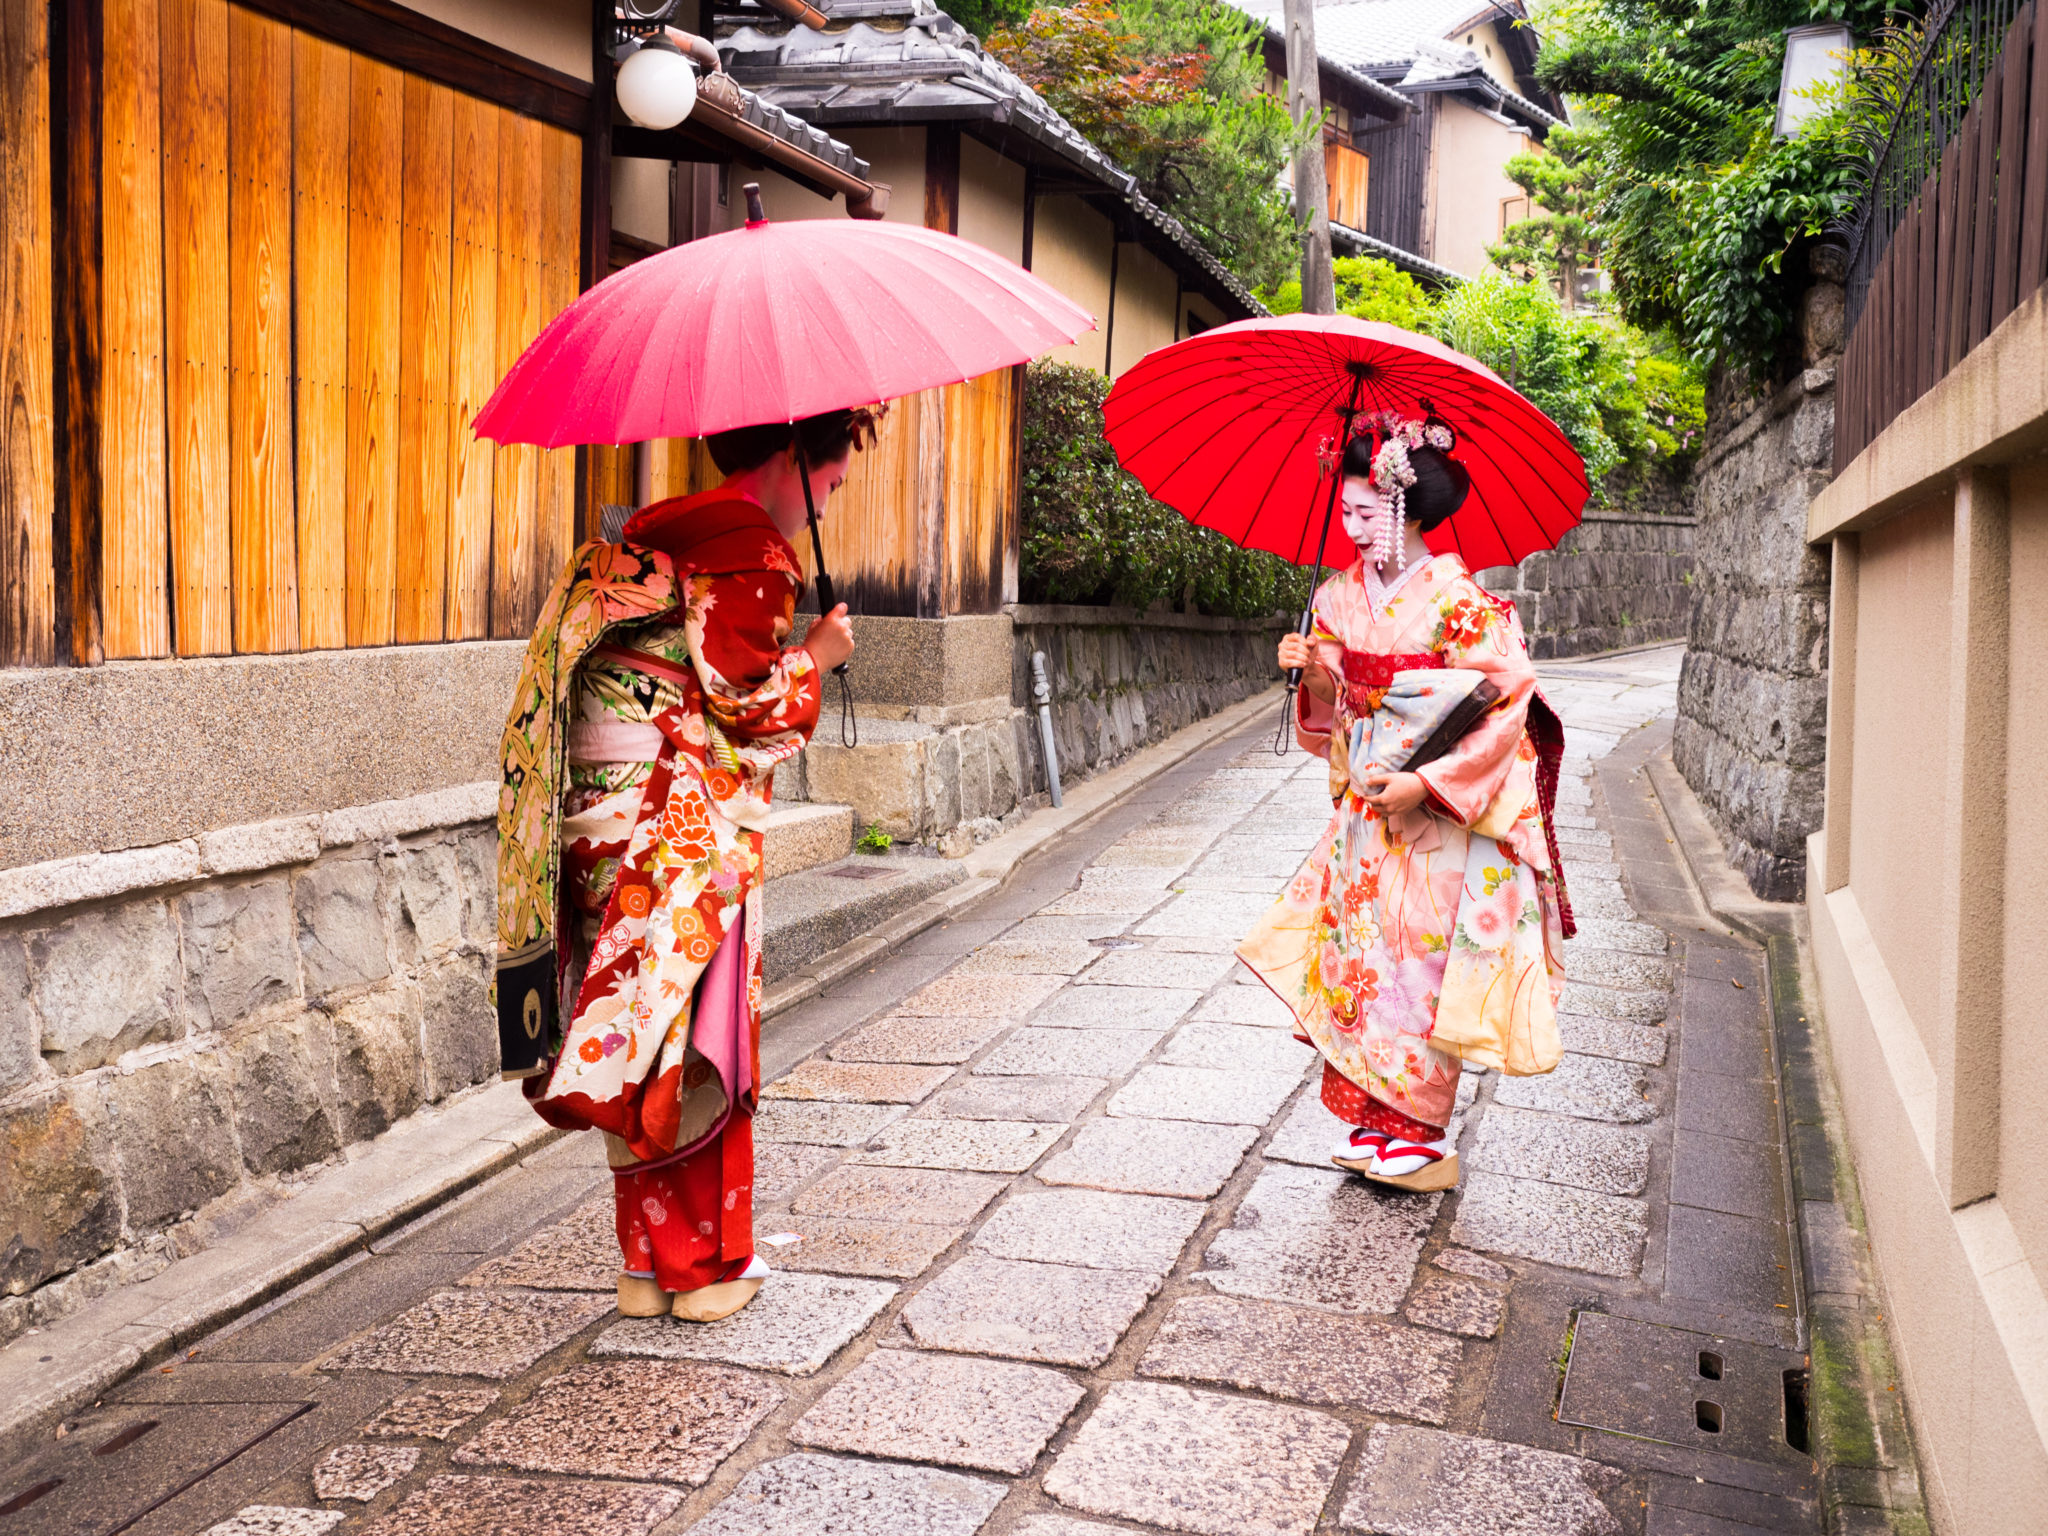 greeting of two young maiko ladies in the old street in Kyoto.